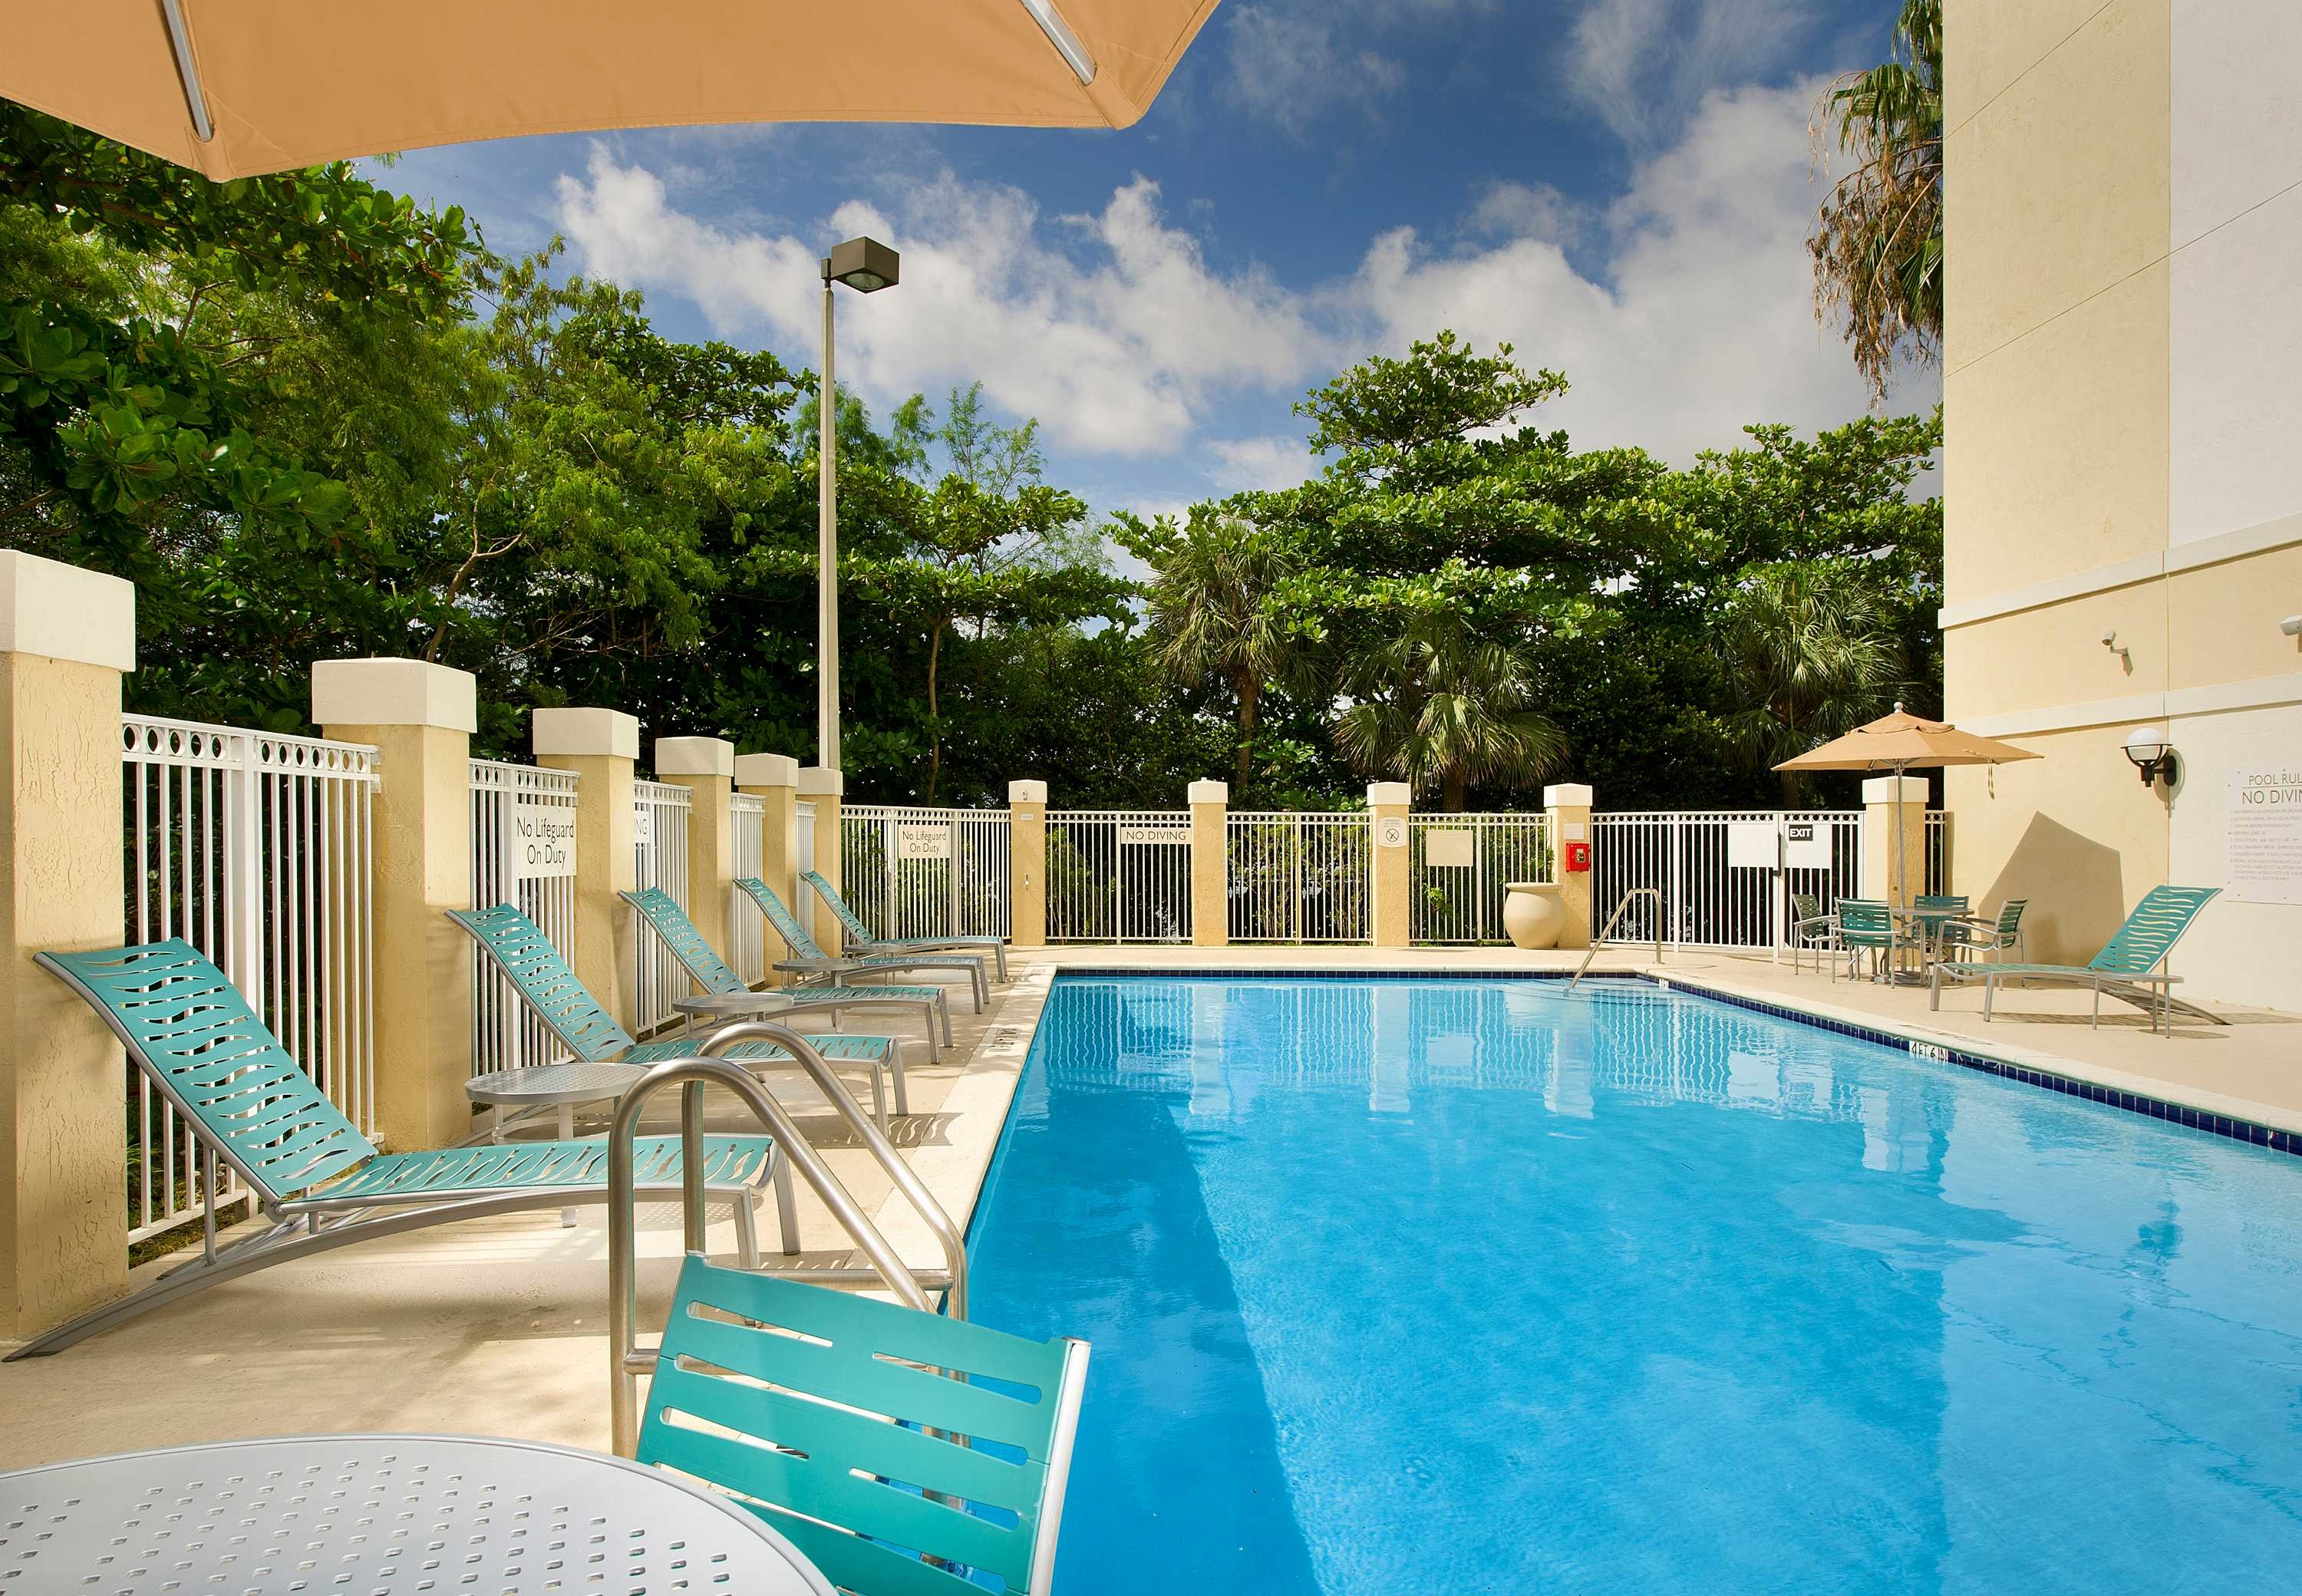 SpringHill Suites by Marriott Miami Airport South image 3